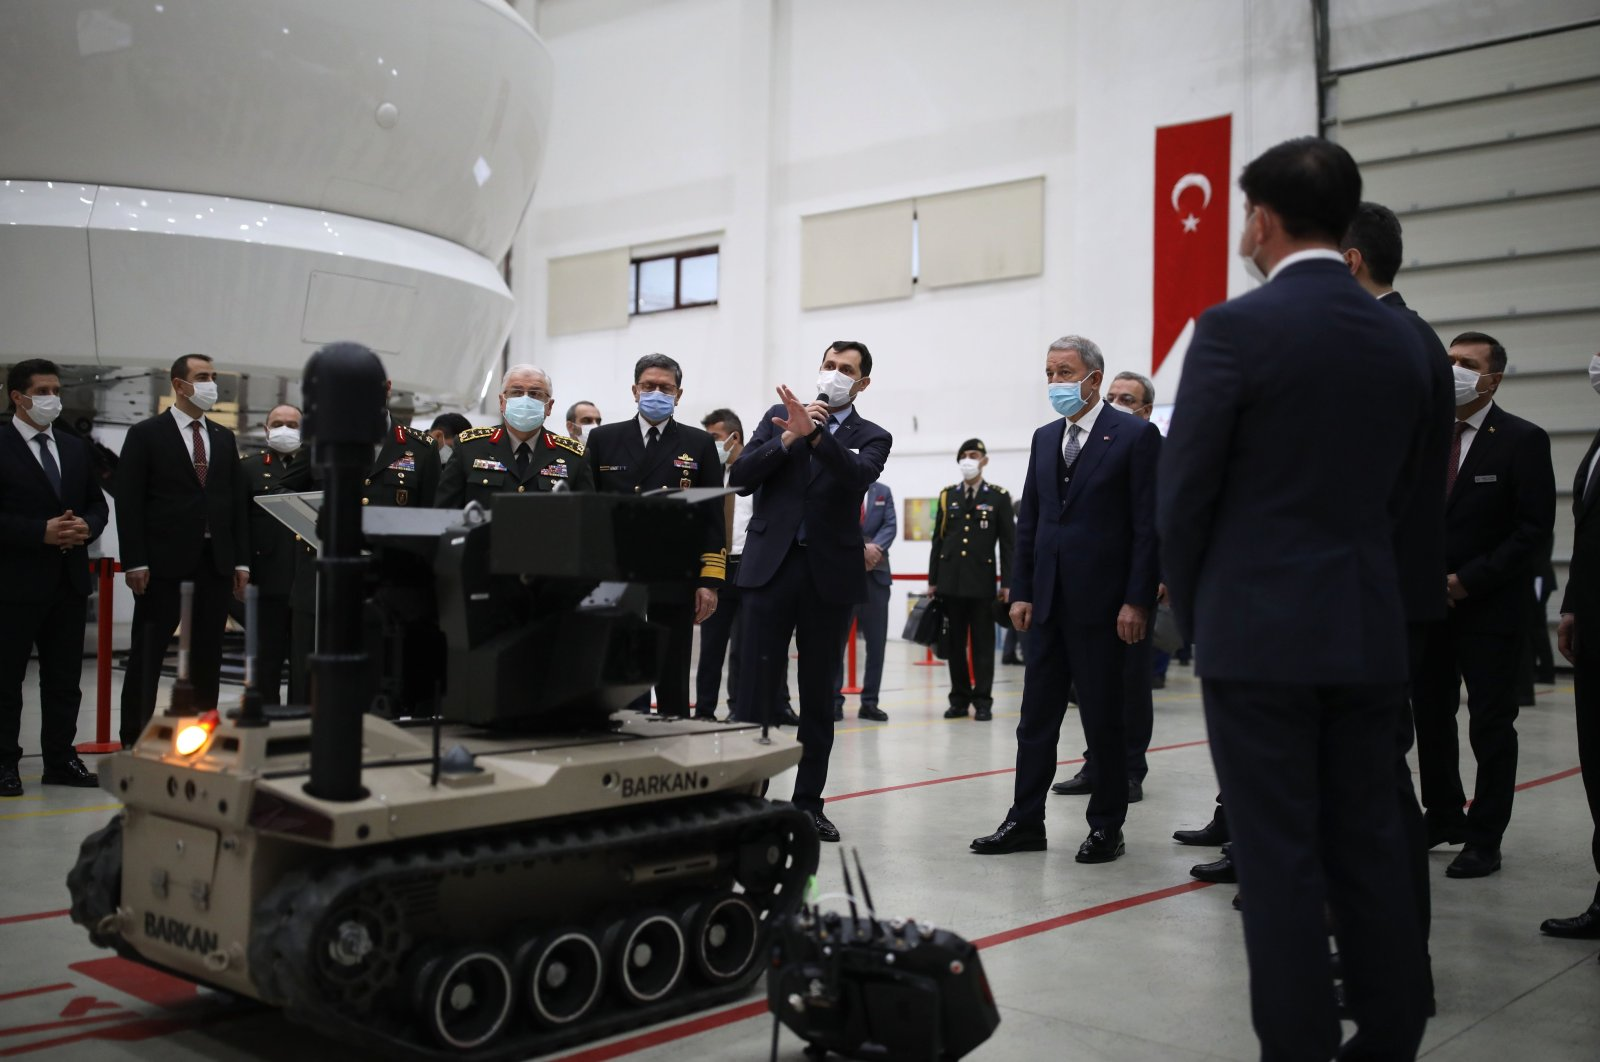 National Defense Minister Hulusi Akar examines products, including an unmanned ground vehicle (UGV) during a visit to Havelsan, Ankara, Turkey, Feb. 27, 2021. (DHA Photo)